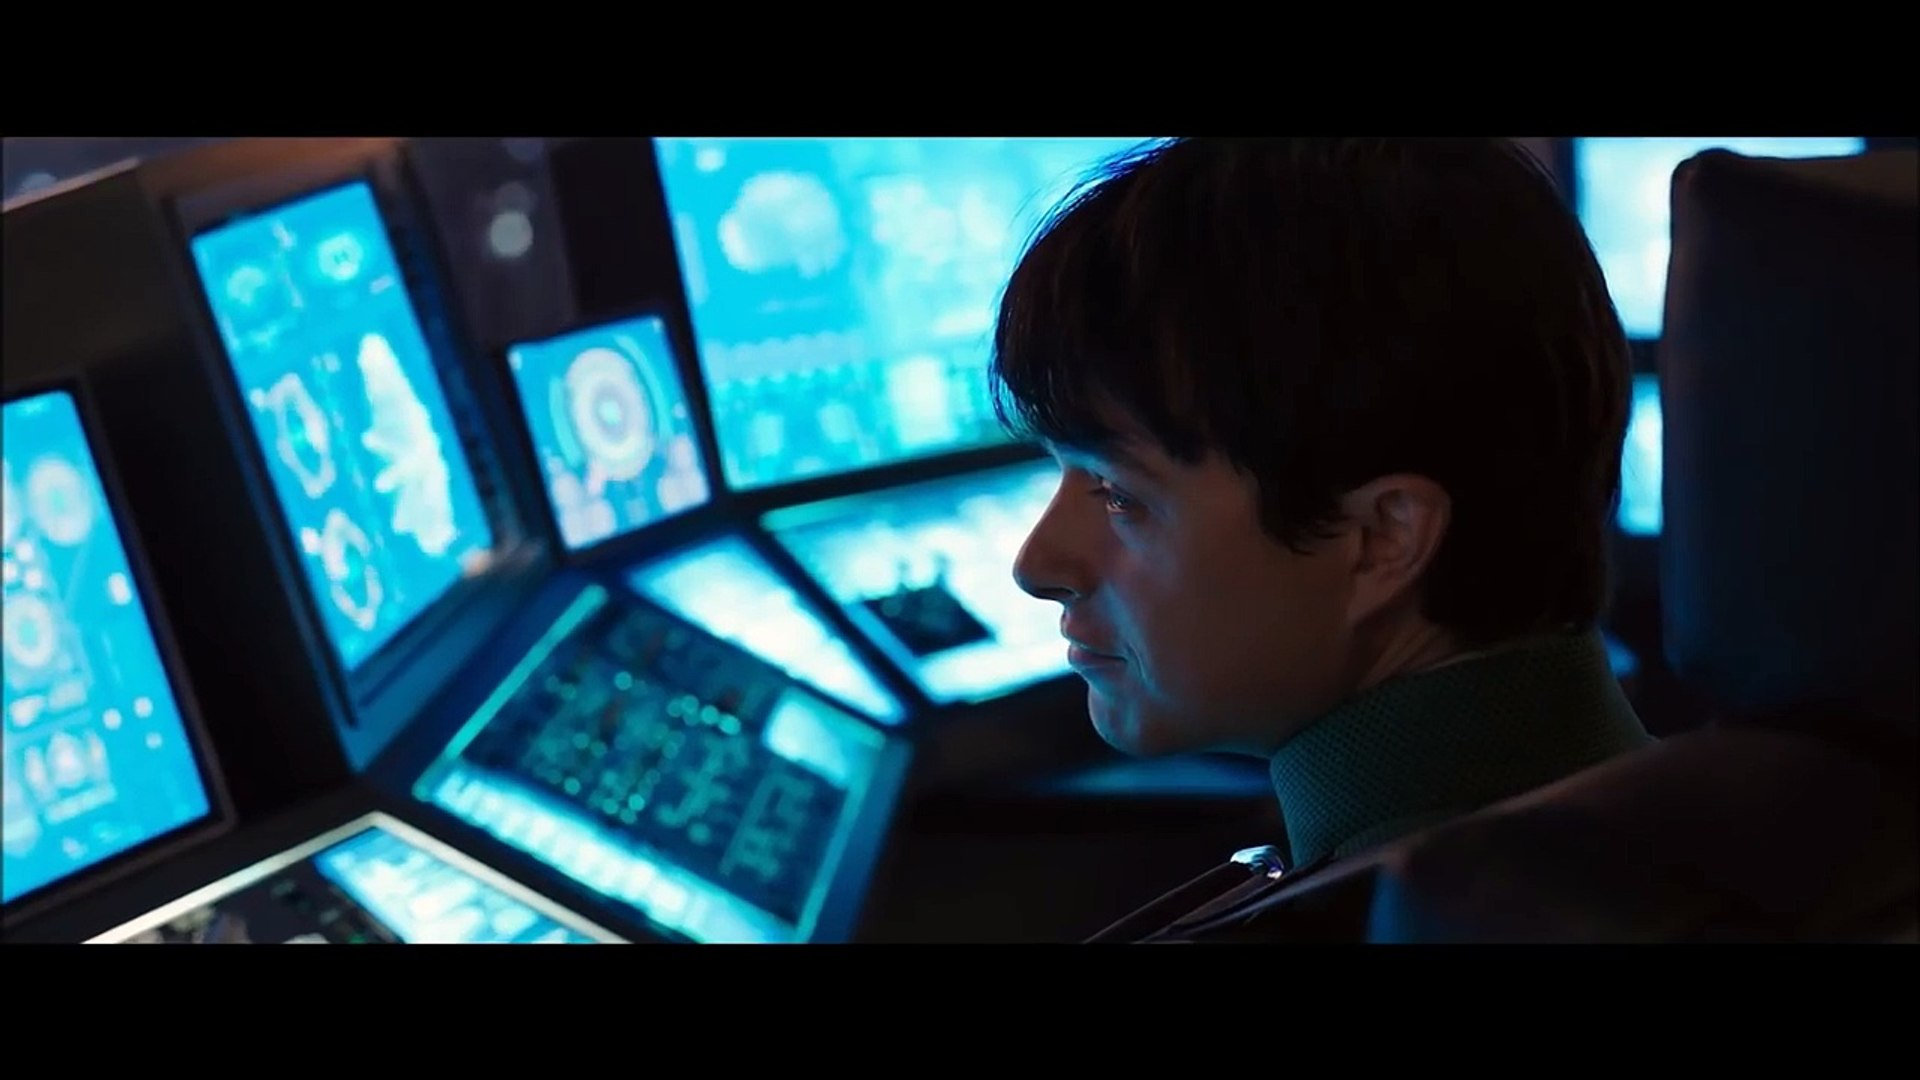 VALERIAN AND THE CITY OF A THOUSAND PLANETS Trailer (2017)